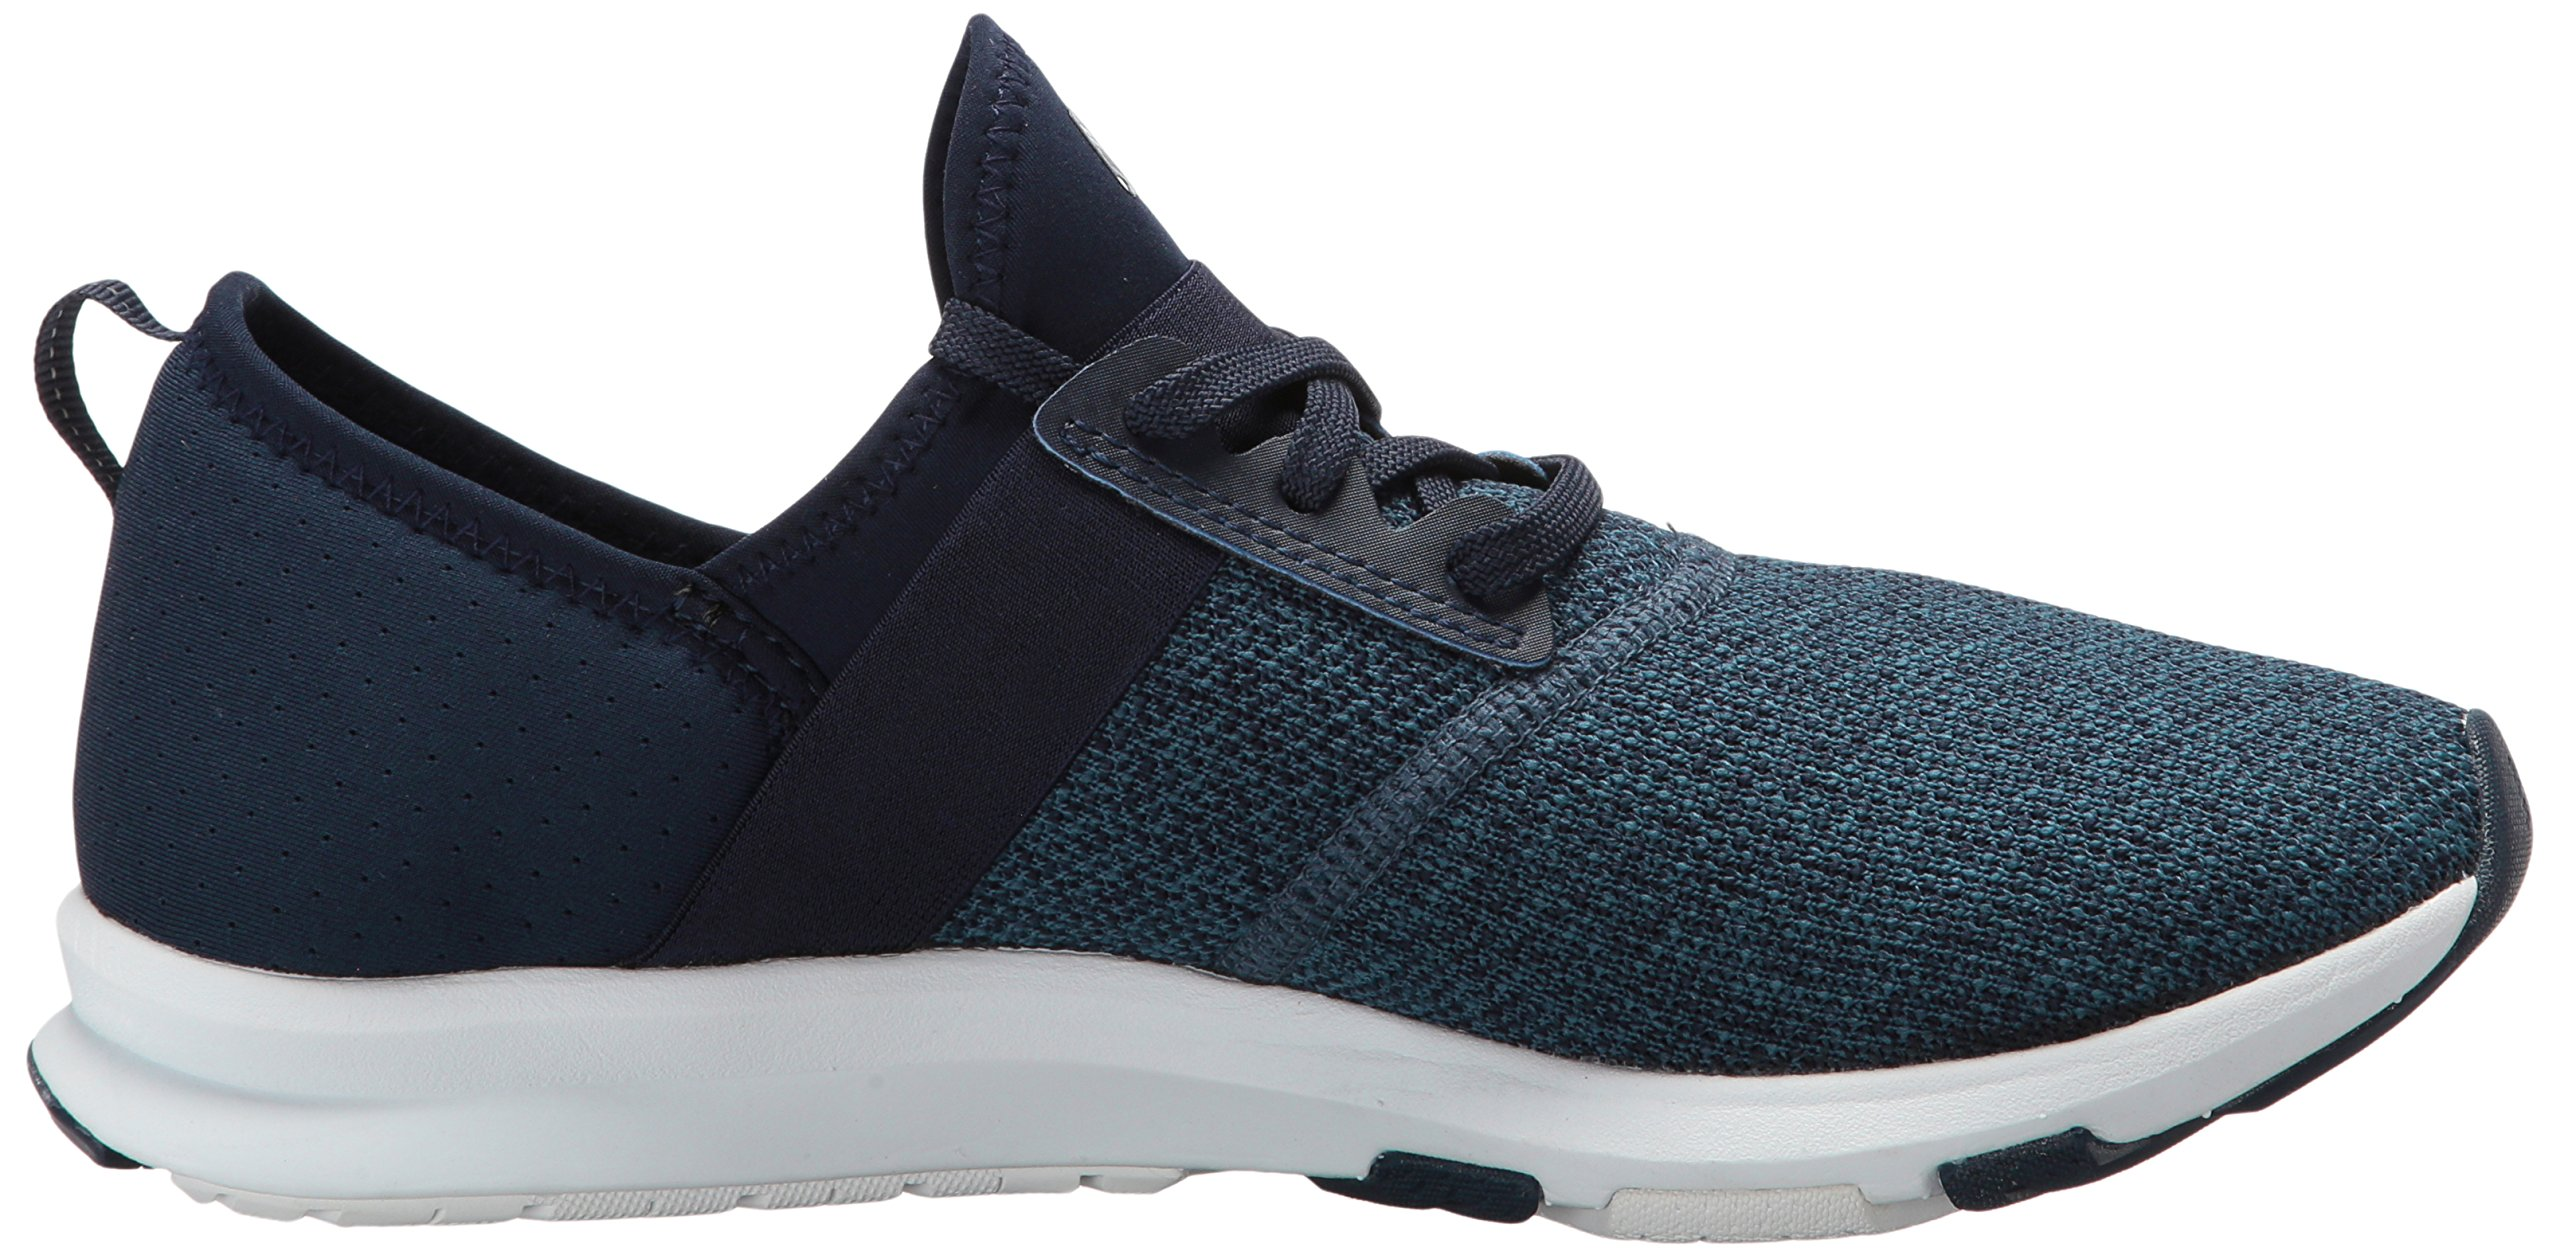 New Balance Women's FuelCore Nergize v1 FuelCore Training Shoe, Navy, 8 D US by New Balance (Image #7)